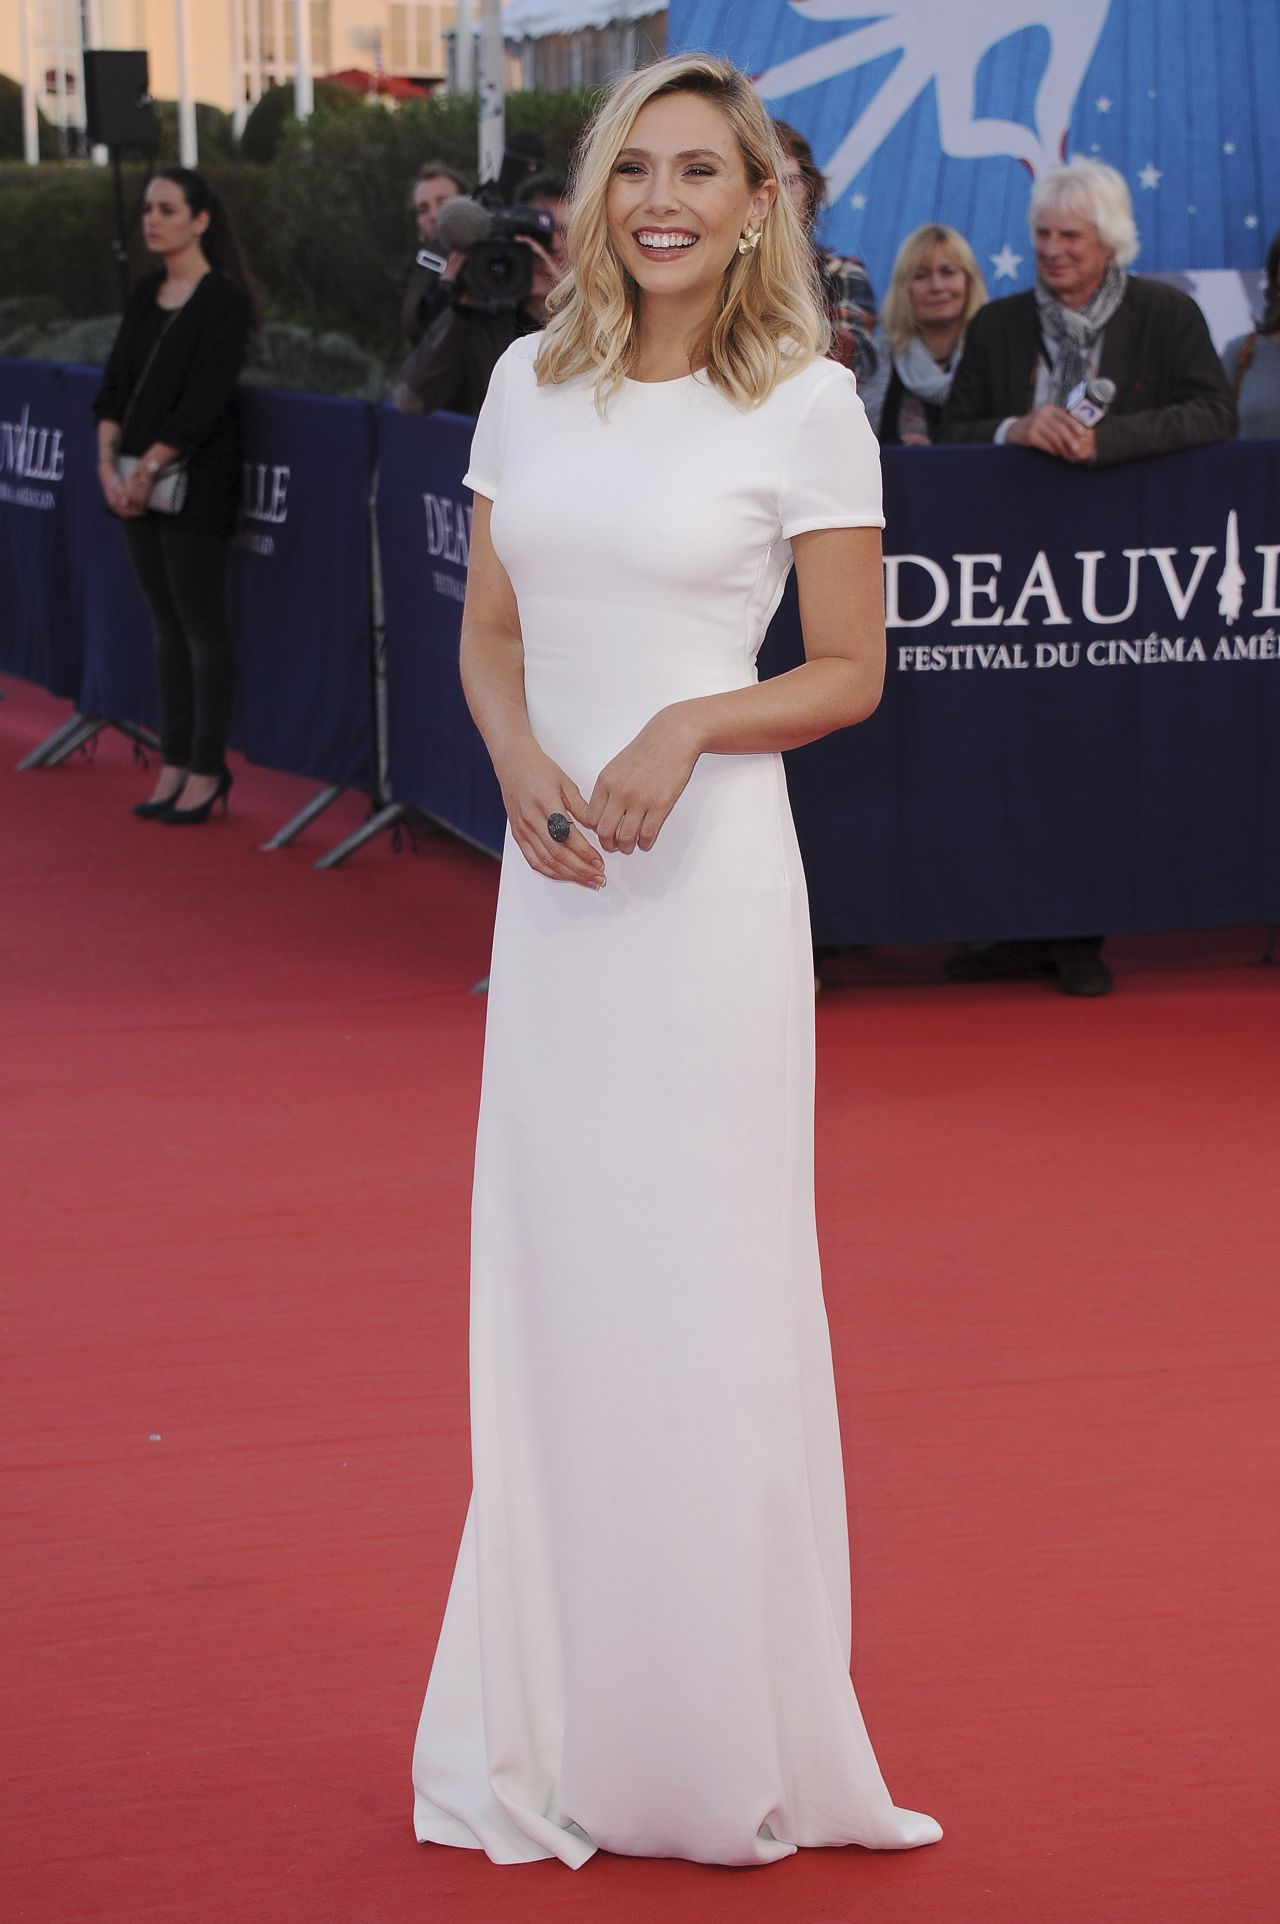 elizabeth-olsen-on-red-carpet-41st-deauville-film-festival_12